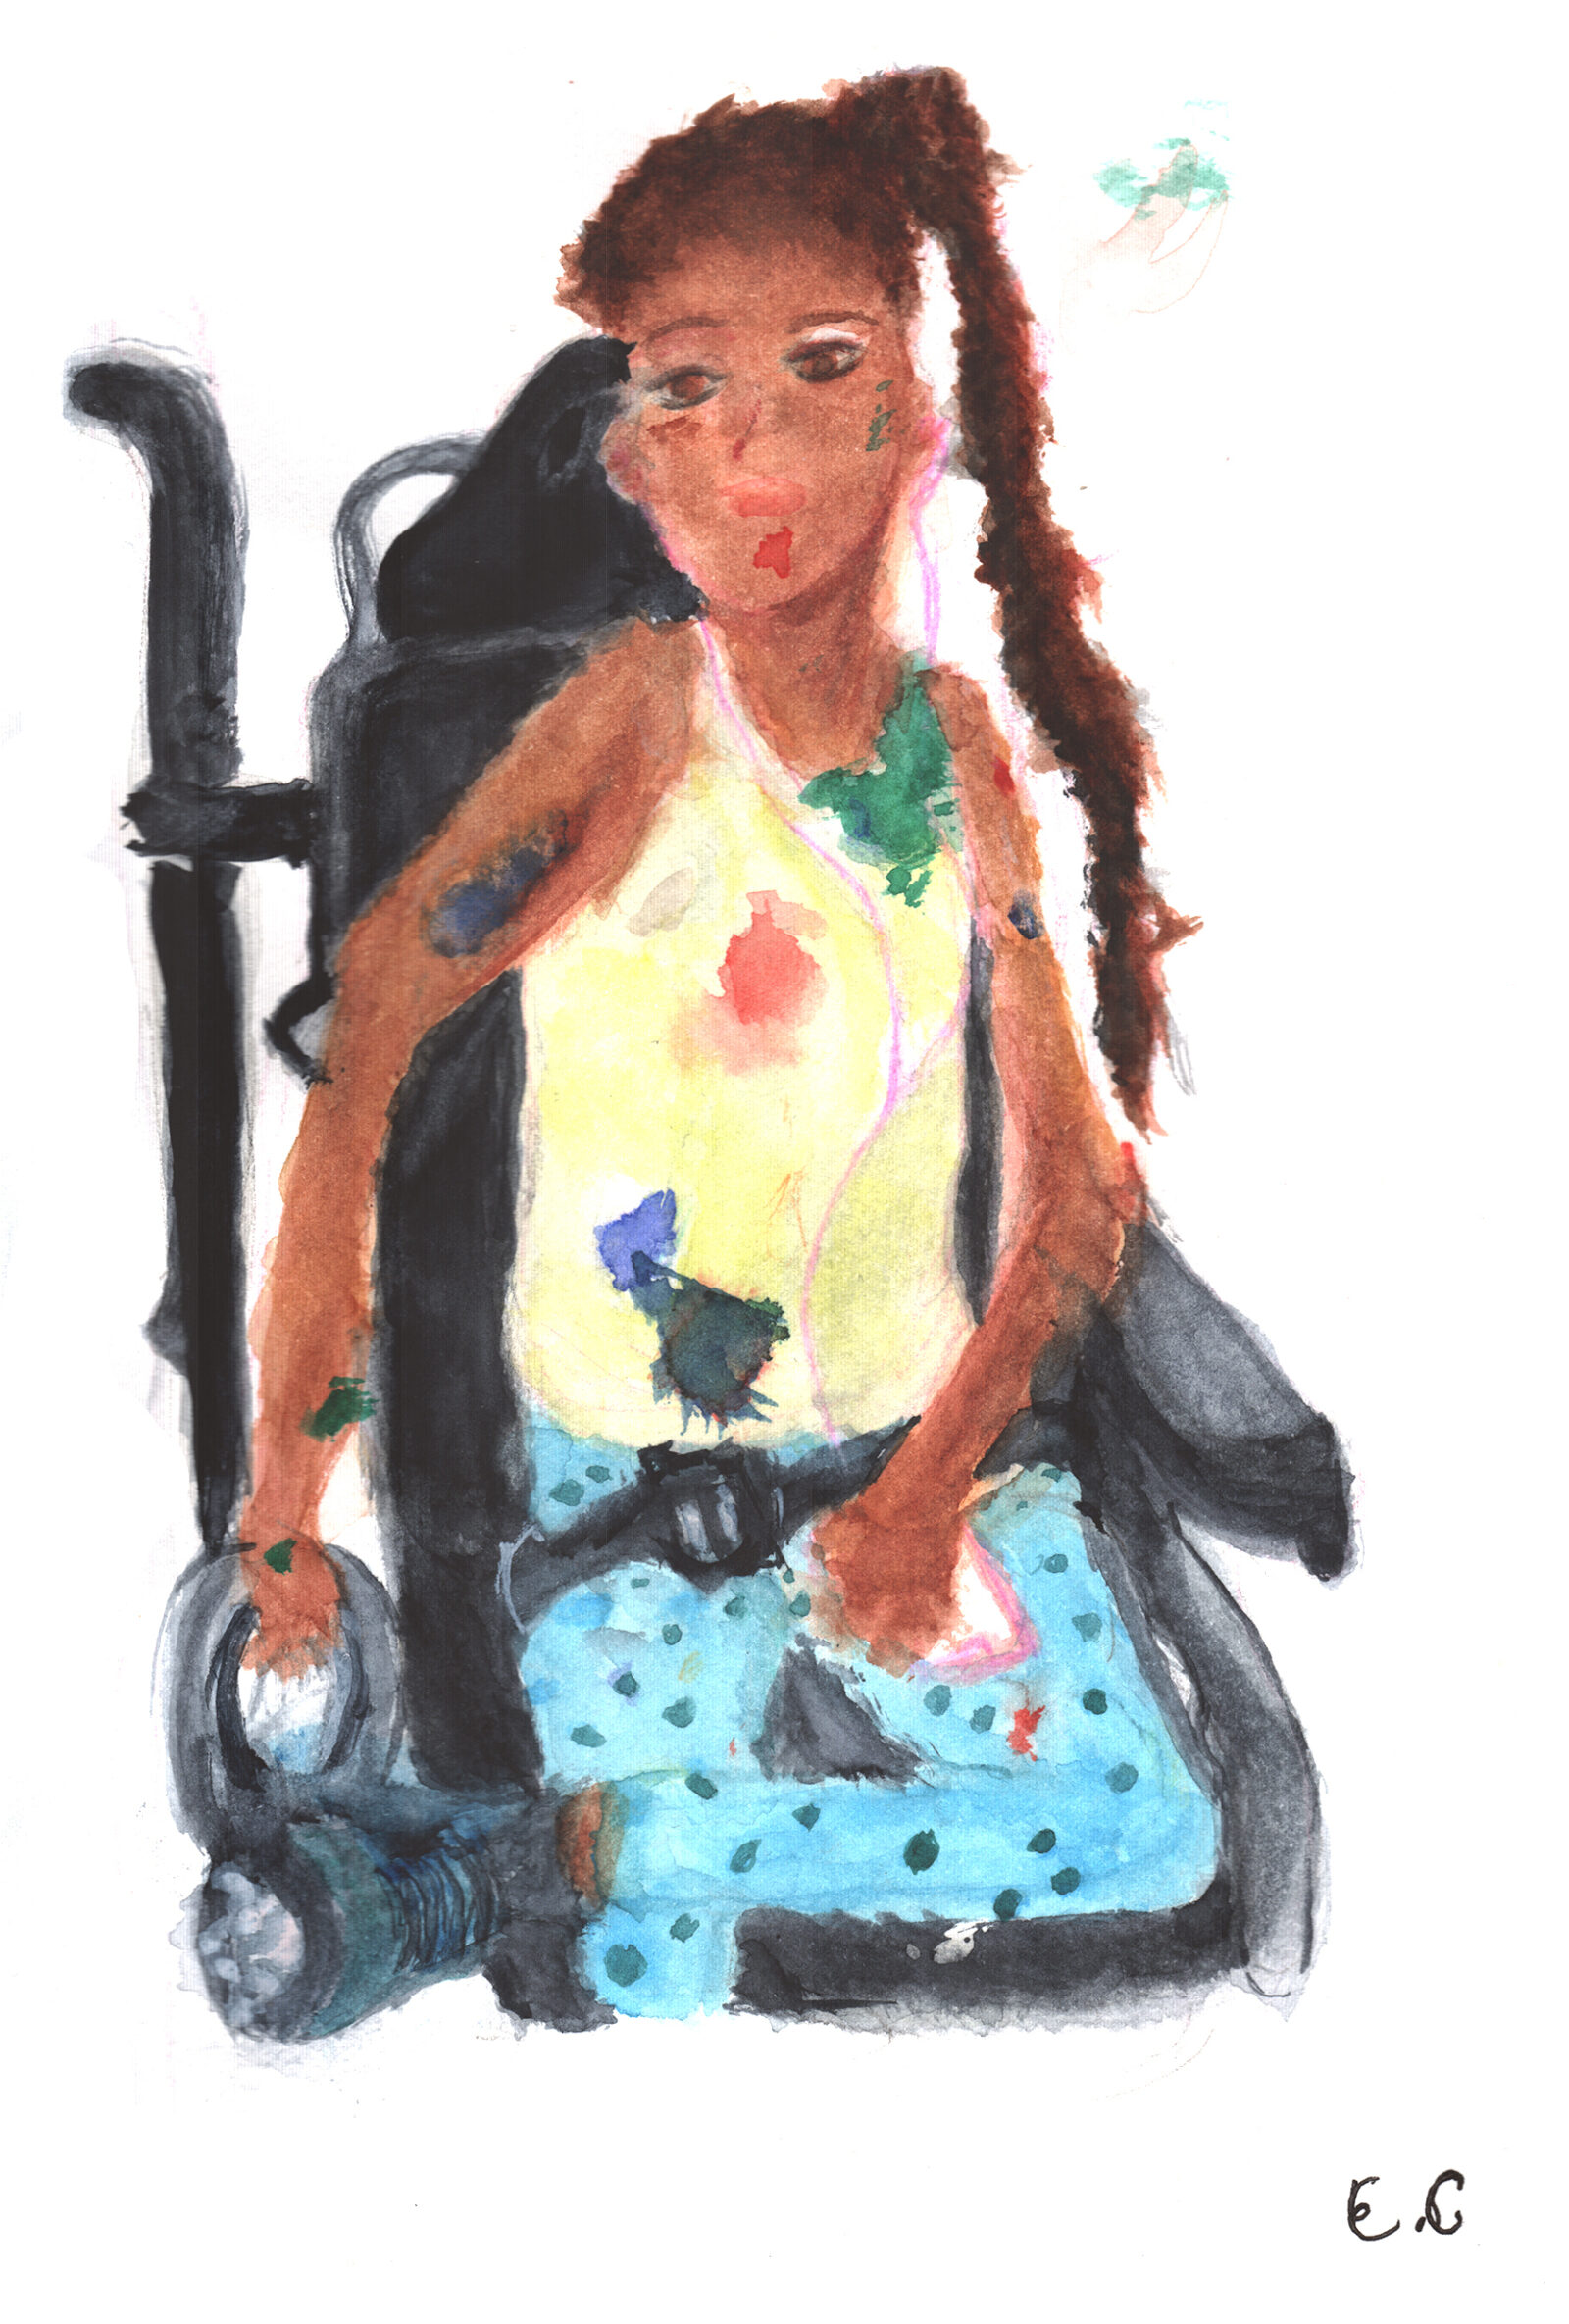 A painting of a girl. She has a long brown ponytail, yellow tank top, and blue polka-dot pants. She is sitting in a wheelchair.